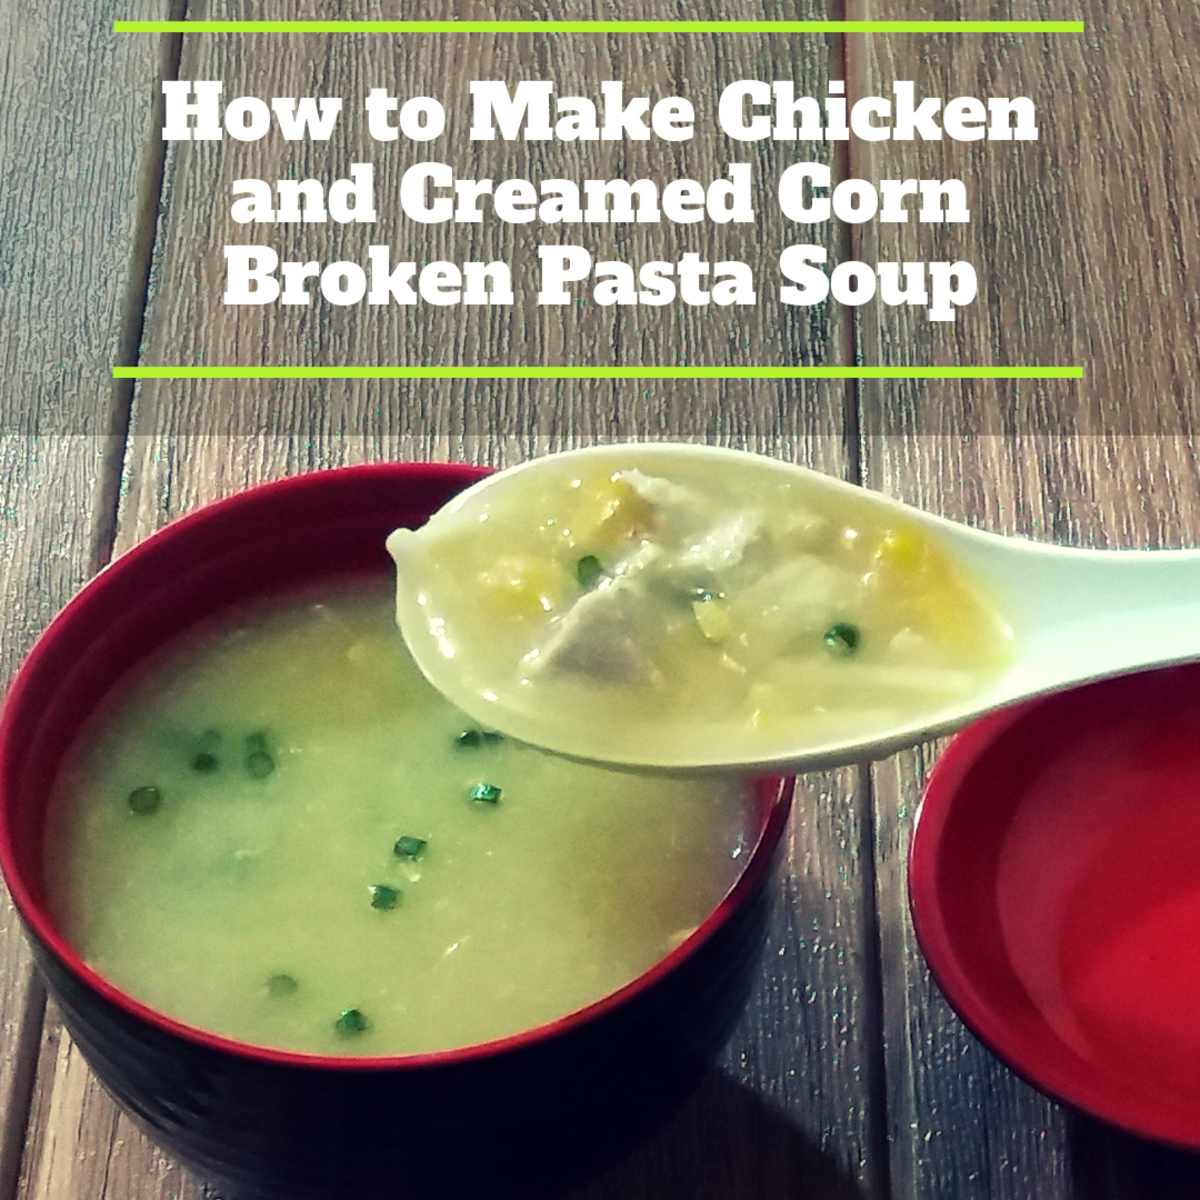 how to make chicken and creamed corn broken pasta soup